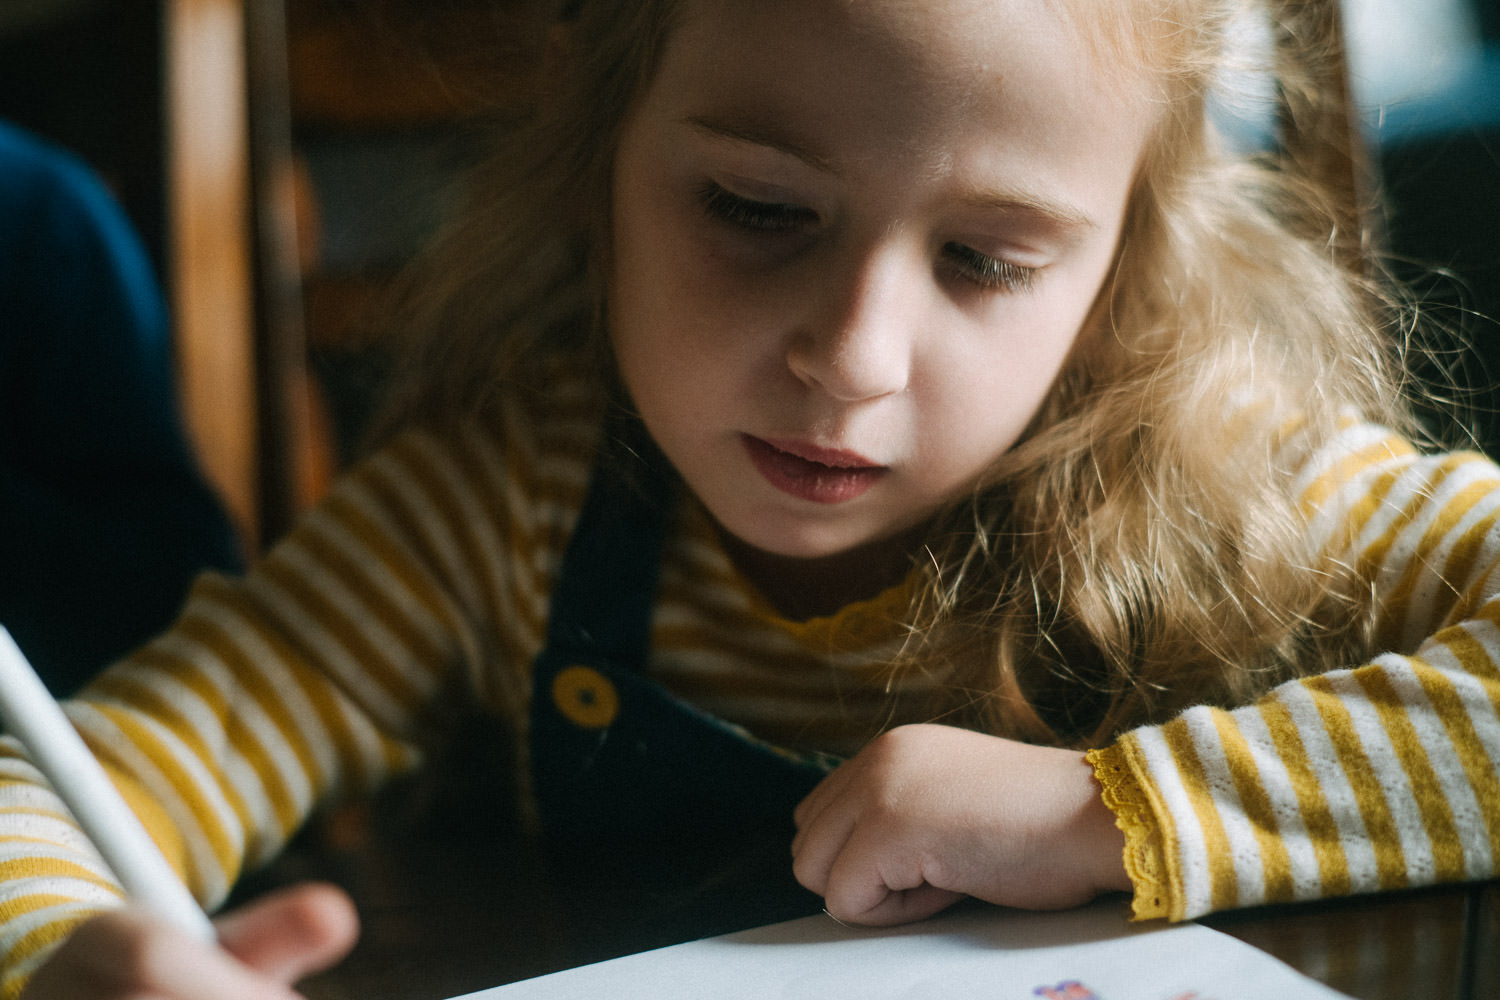 A little girl writes at her kitchen table.